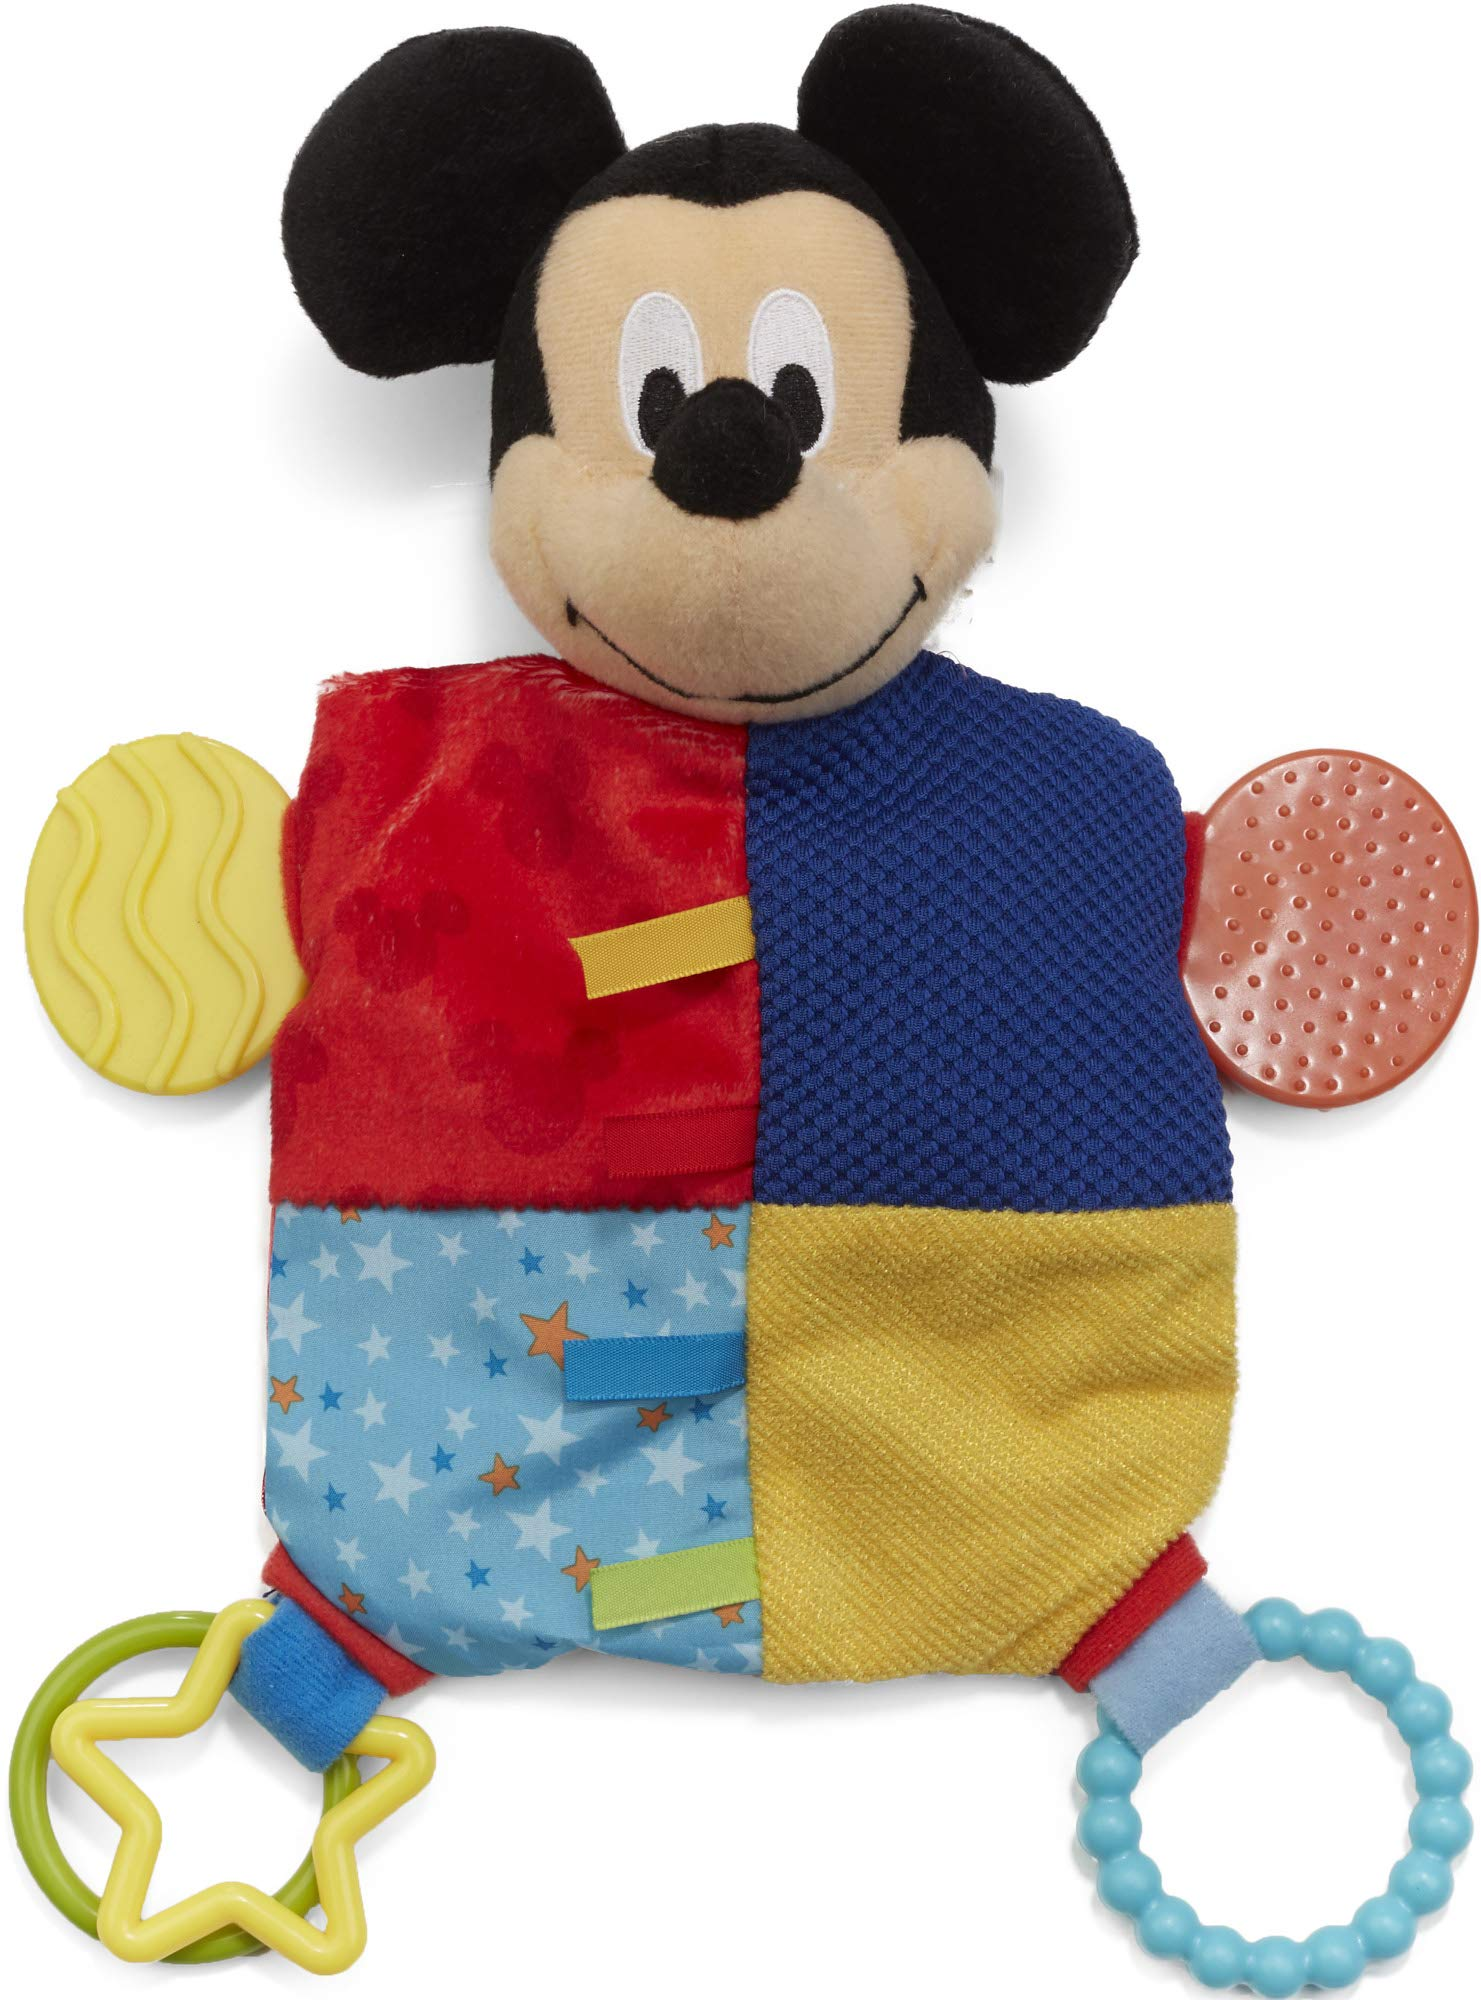 8a387291d Amazon.com  Disney Baby Mickey Mouse Plush Teether Blanket